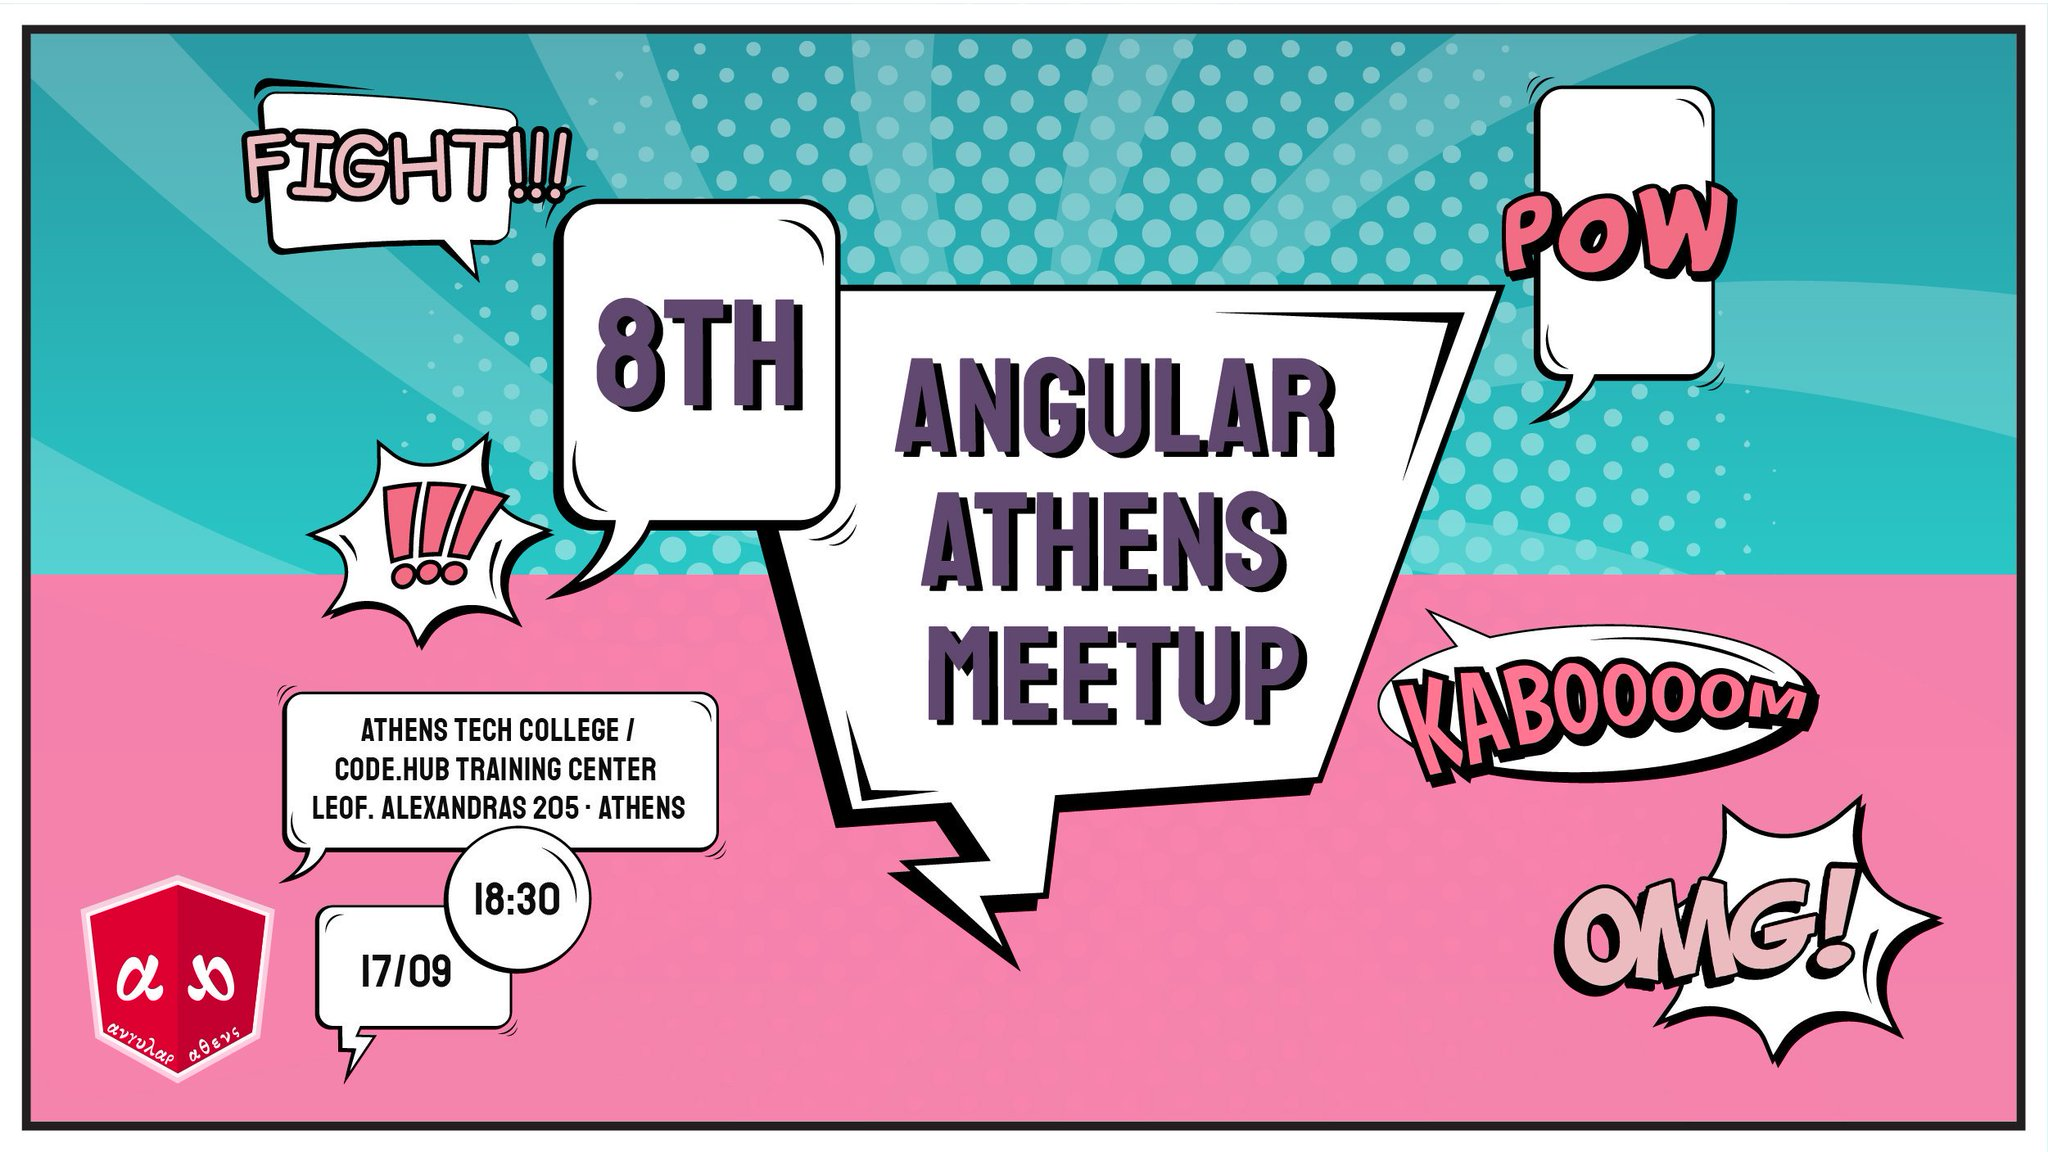 Soooooooo it's time to announce our awesome 8th #Angular #Athens #Meetup! Get Ready for @nrwl_io and our three awesome speakers @jeffbcross @MrJamesHenry @victorsavkin ! https://t.co/u1XItINLeM